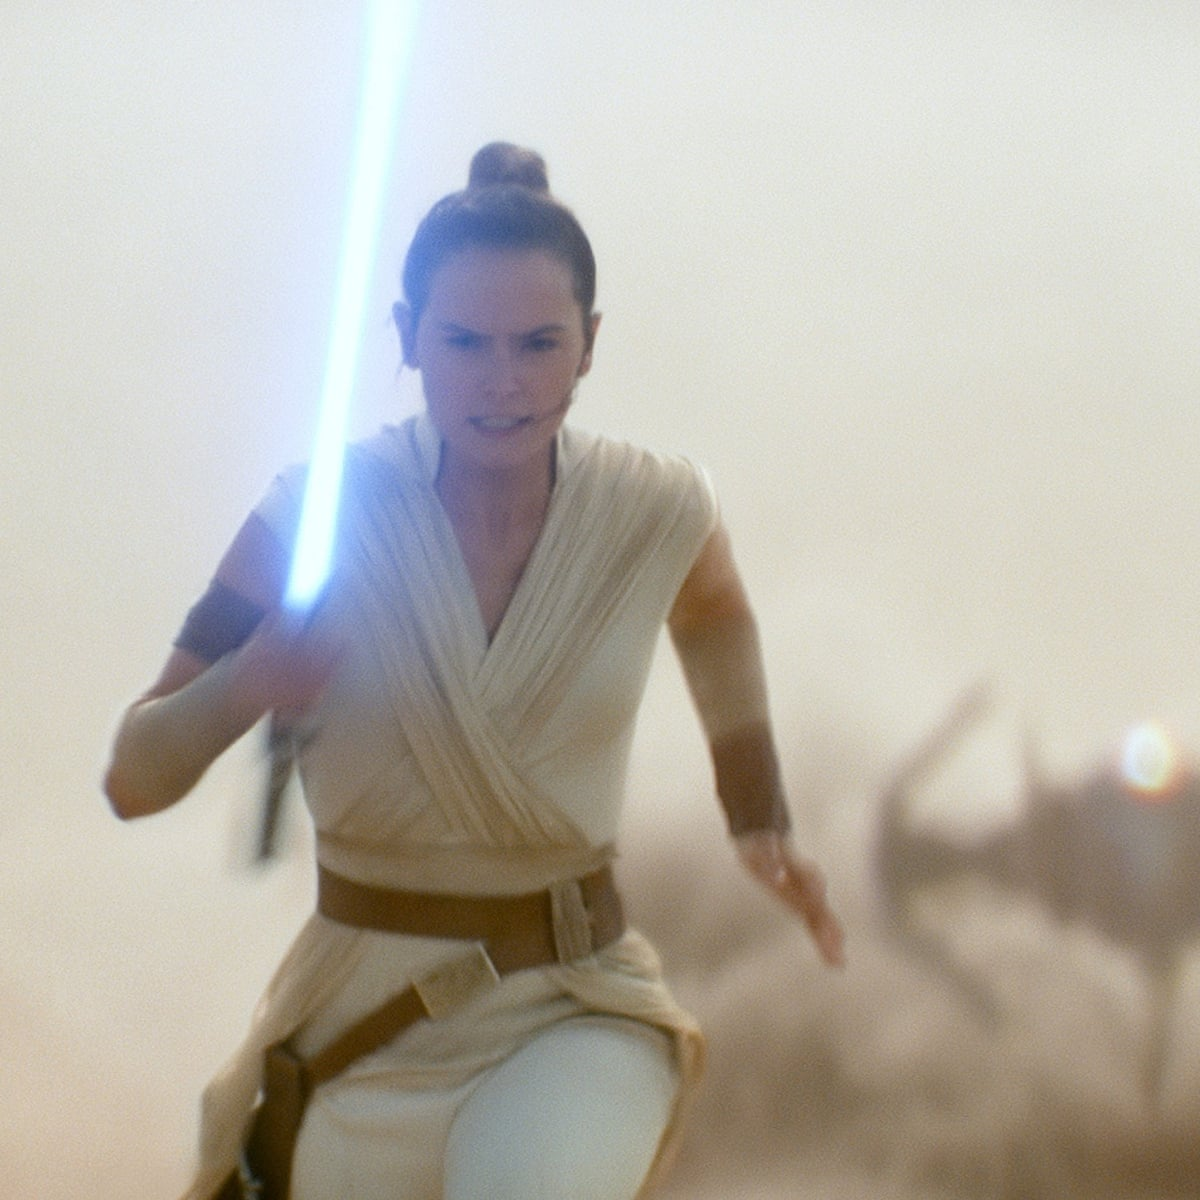 Star Wars The Rise Of Skywalker Fan Review With Spoilers The Thrill Is Tangible Star Wars The Rise Of Skywalker The Guardian